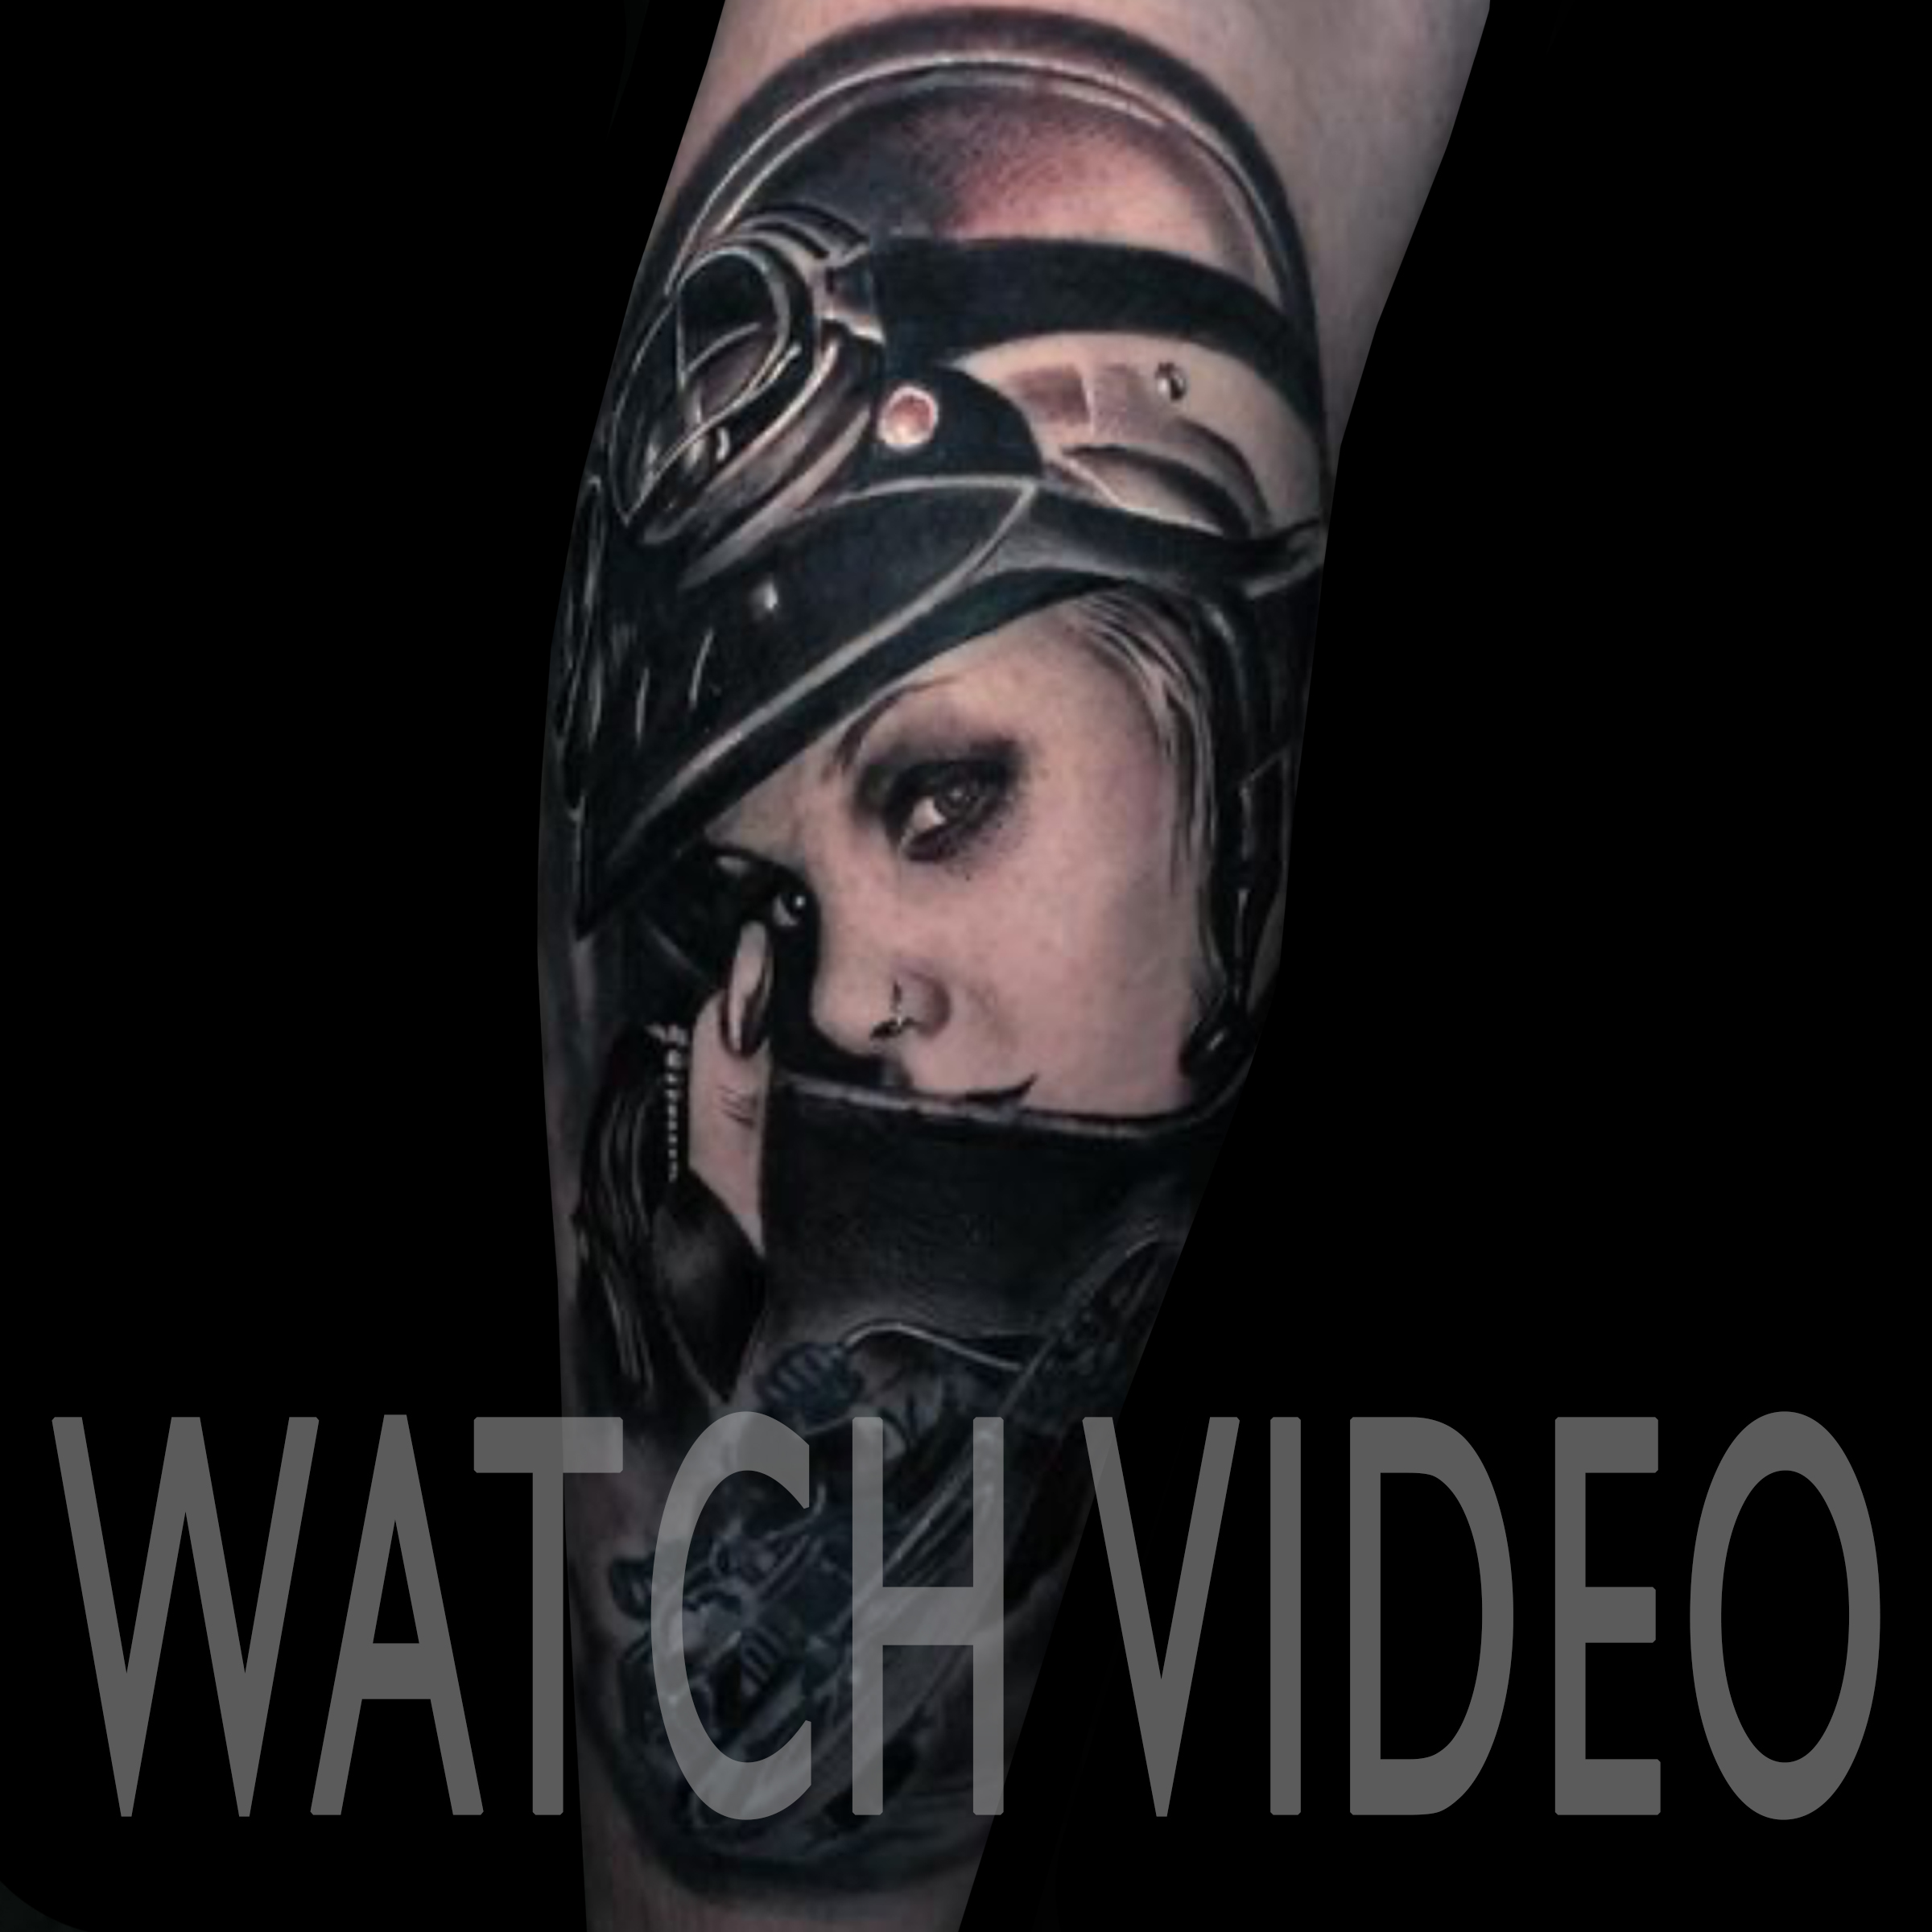 LarkTattoo, Tattoo, Tattoos, LanceLevine, LanceLevineTattoo, LanceLevineLarkTattoo, Motorcycle, MotorcycleTattoo, BlackAndGray, BlackAndGrayTattoo, BlackAndGrey, BlackAndGreyTattoo, BNG, BNGTattoo, BNGInk, BNGInkJunkies, Realism, RealismTattoo, Realistic, RealisticTattoo, BlackAndGrayRealism, BlackAndGrayRealismTattoo, BlackAndGreyRealism, BlackAndGreyRealismTattoo, TattoosForBikers, TattooArtist, Tattoist, Tattooer, LongIslandTattooArtist, LongIslandTattooer, LongIslandTattoo, TattooOfTheDay, Tat, Tats, Tatts, Tatted, Inked, Ink, TattooInk, AmazingInk, AmazingTattoo, BodyArt, LarkTattooWestbury, Westbury, LongIsland, NY, NewYork, USA, Art, Tattedup, InkedUp, LarkTattoos